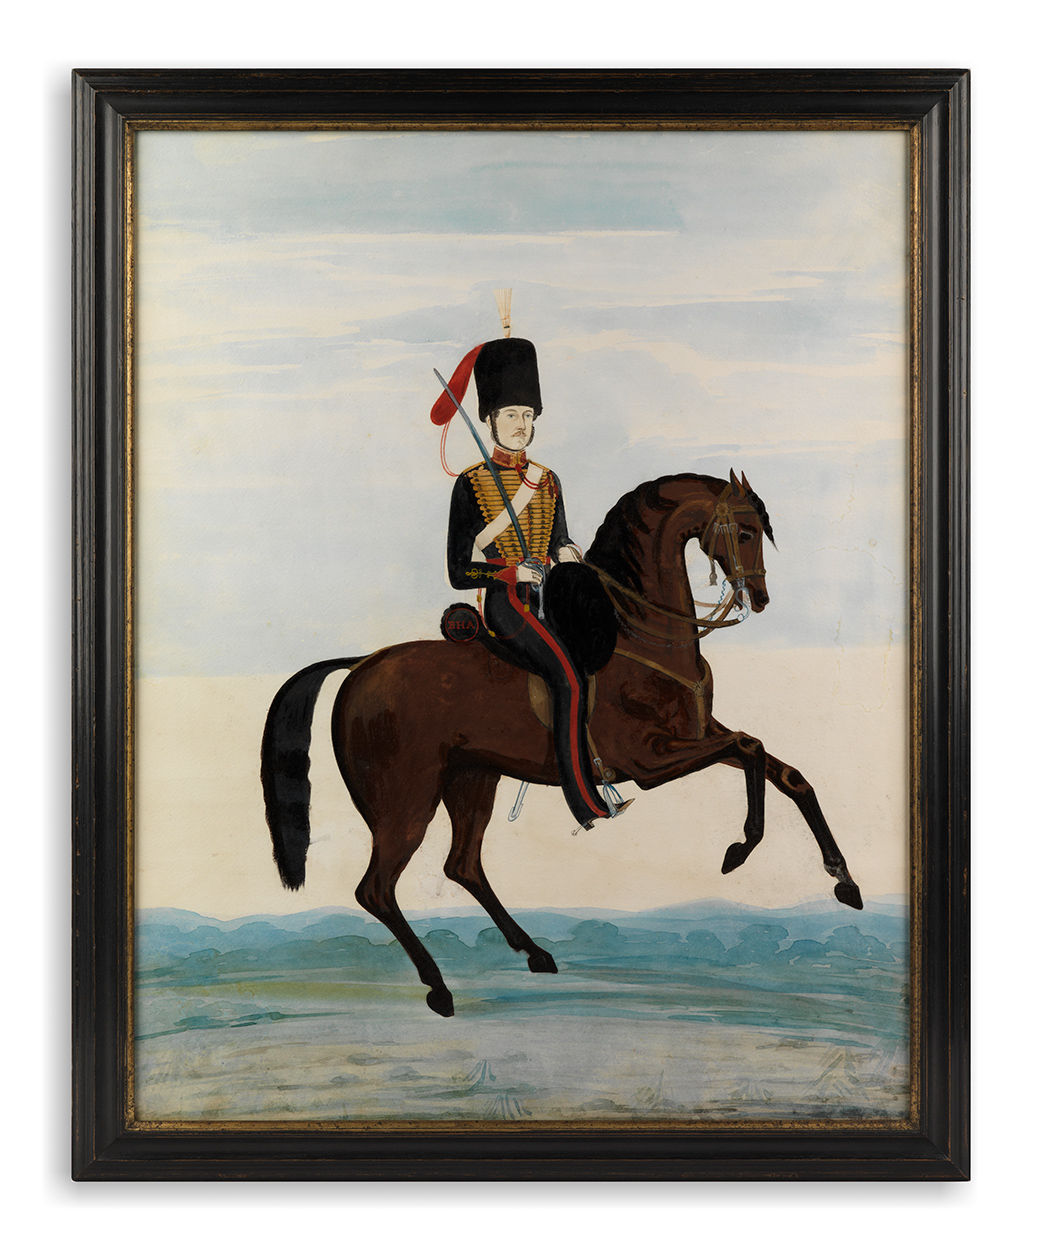 Remarkable Naïve Military Equestrian Portrait